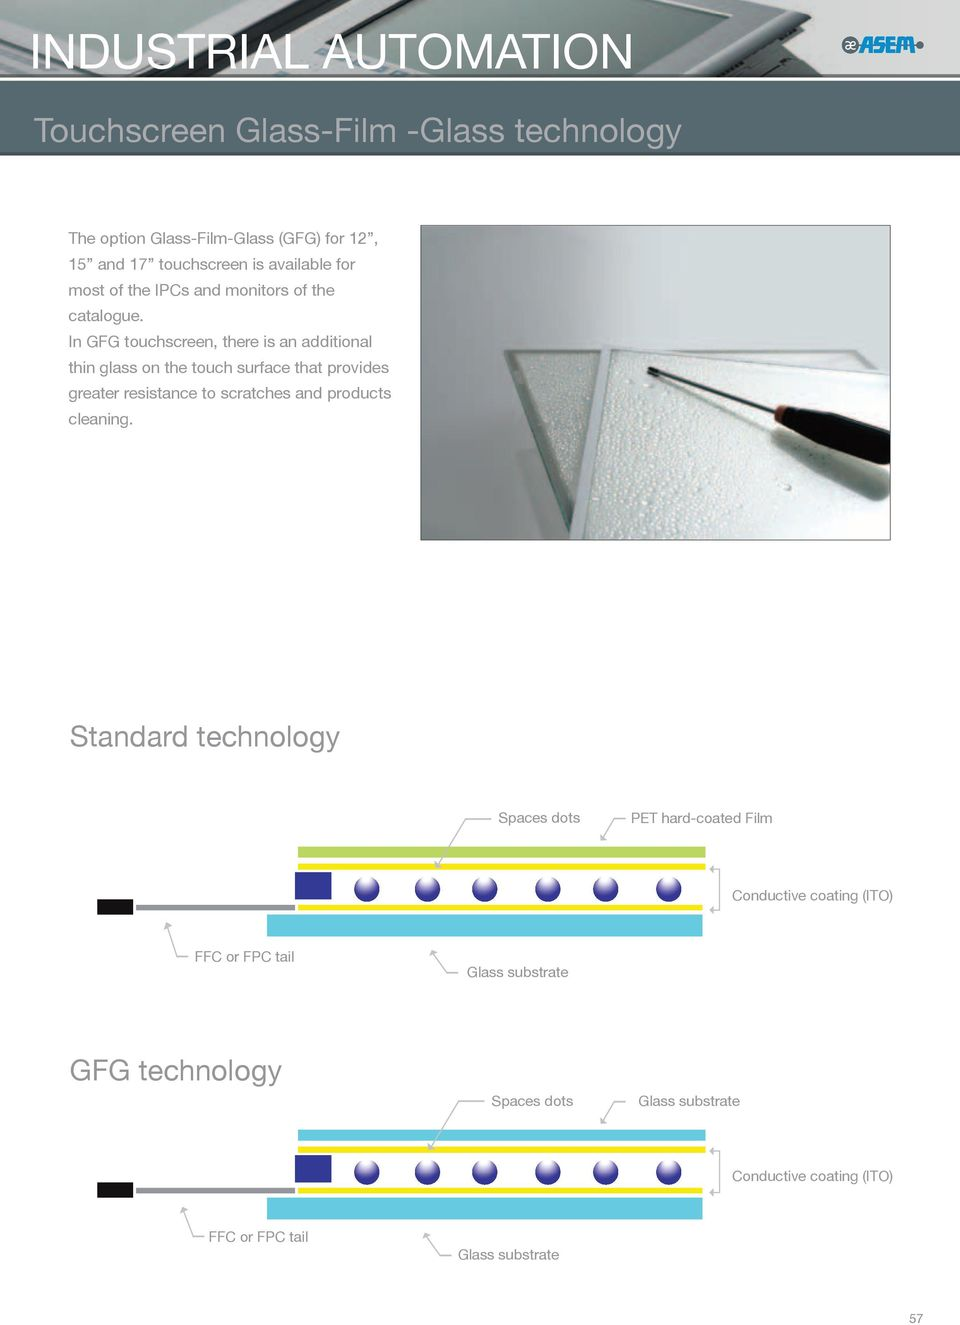 In GFG touchscreen, there is an additional thin glass on the touch surface that provides greater resistance to scratches and products